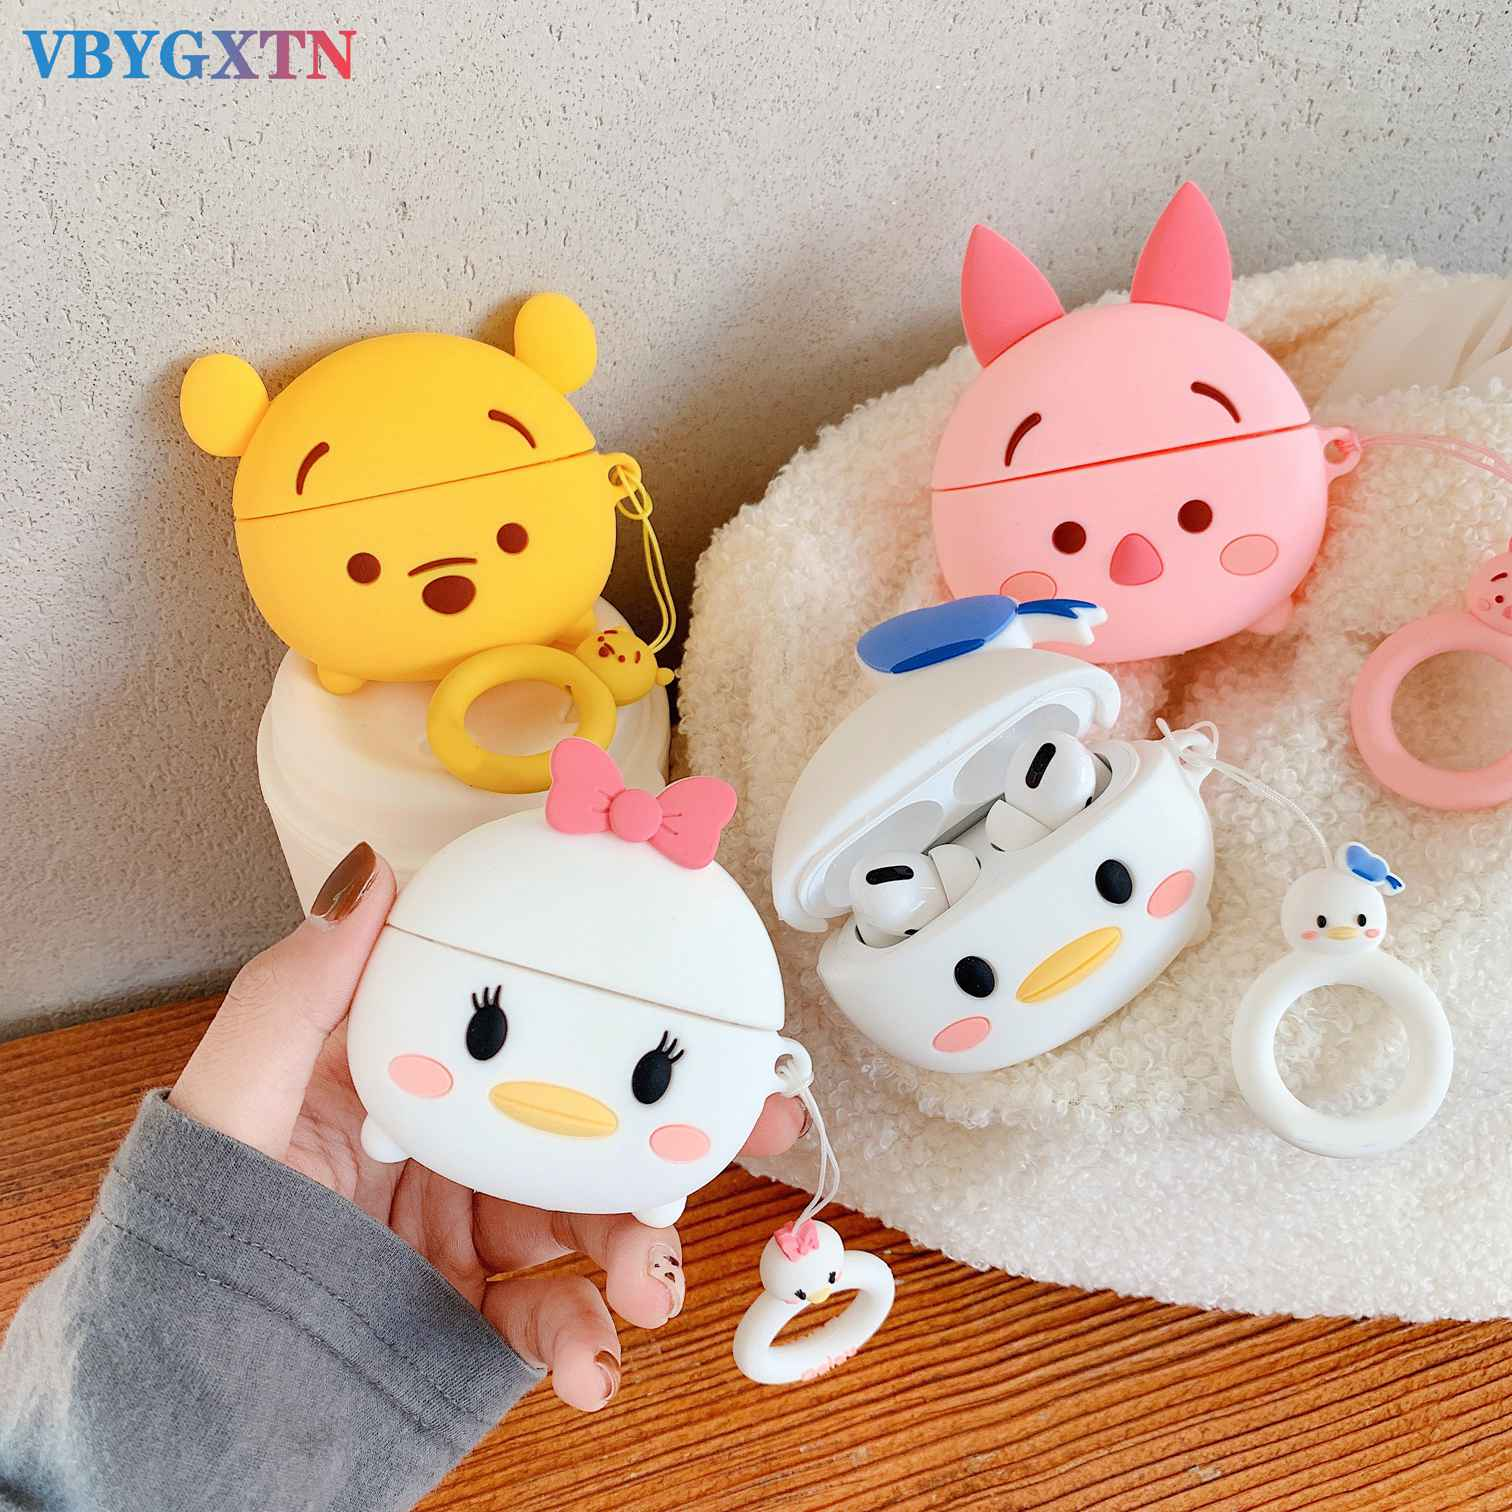 Funda For Apple AirPods Pro Case Cartoon Pig/duck 3D Animal Silicon Headset Cover For Air Pods Pro 3 Tws Bluetooth Earphone Case